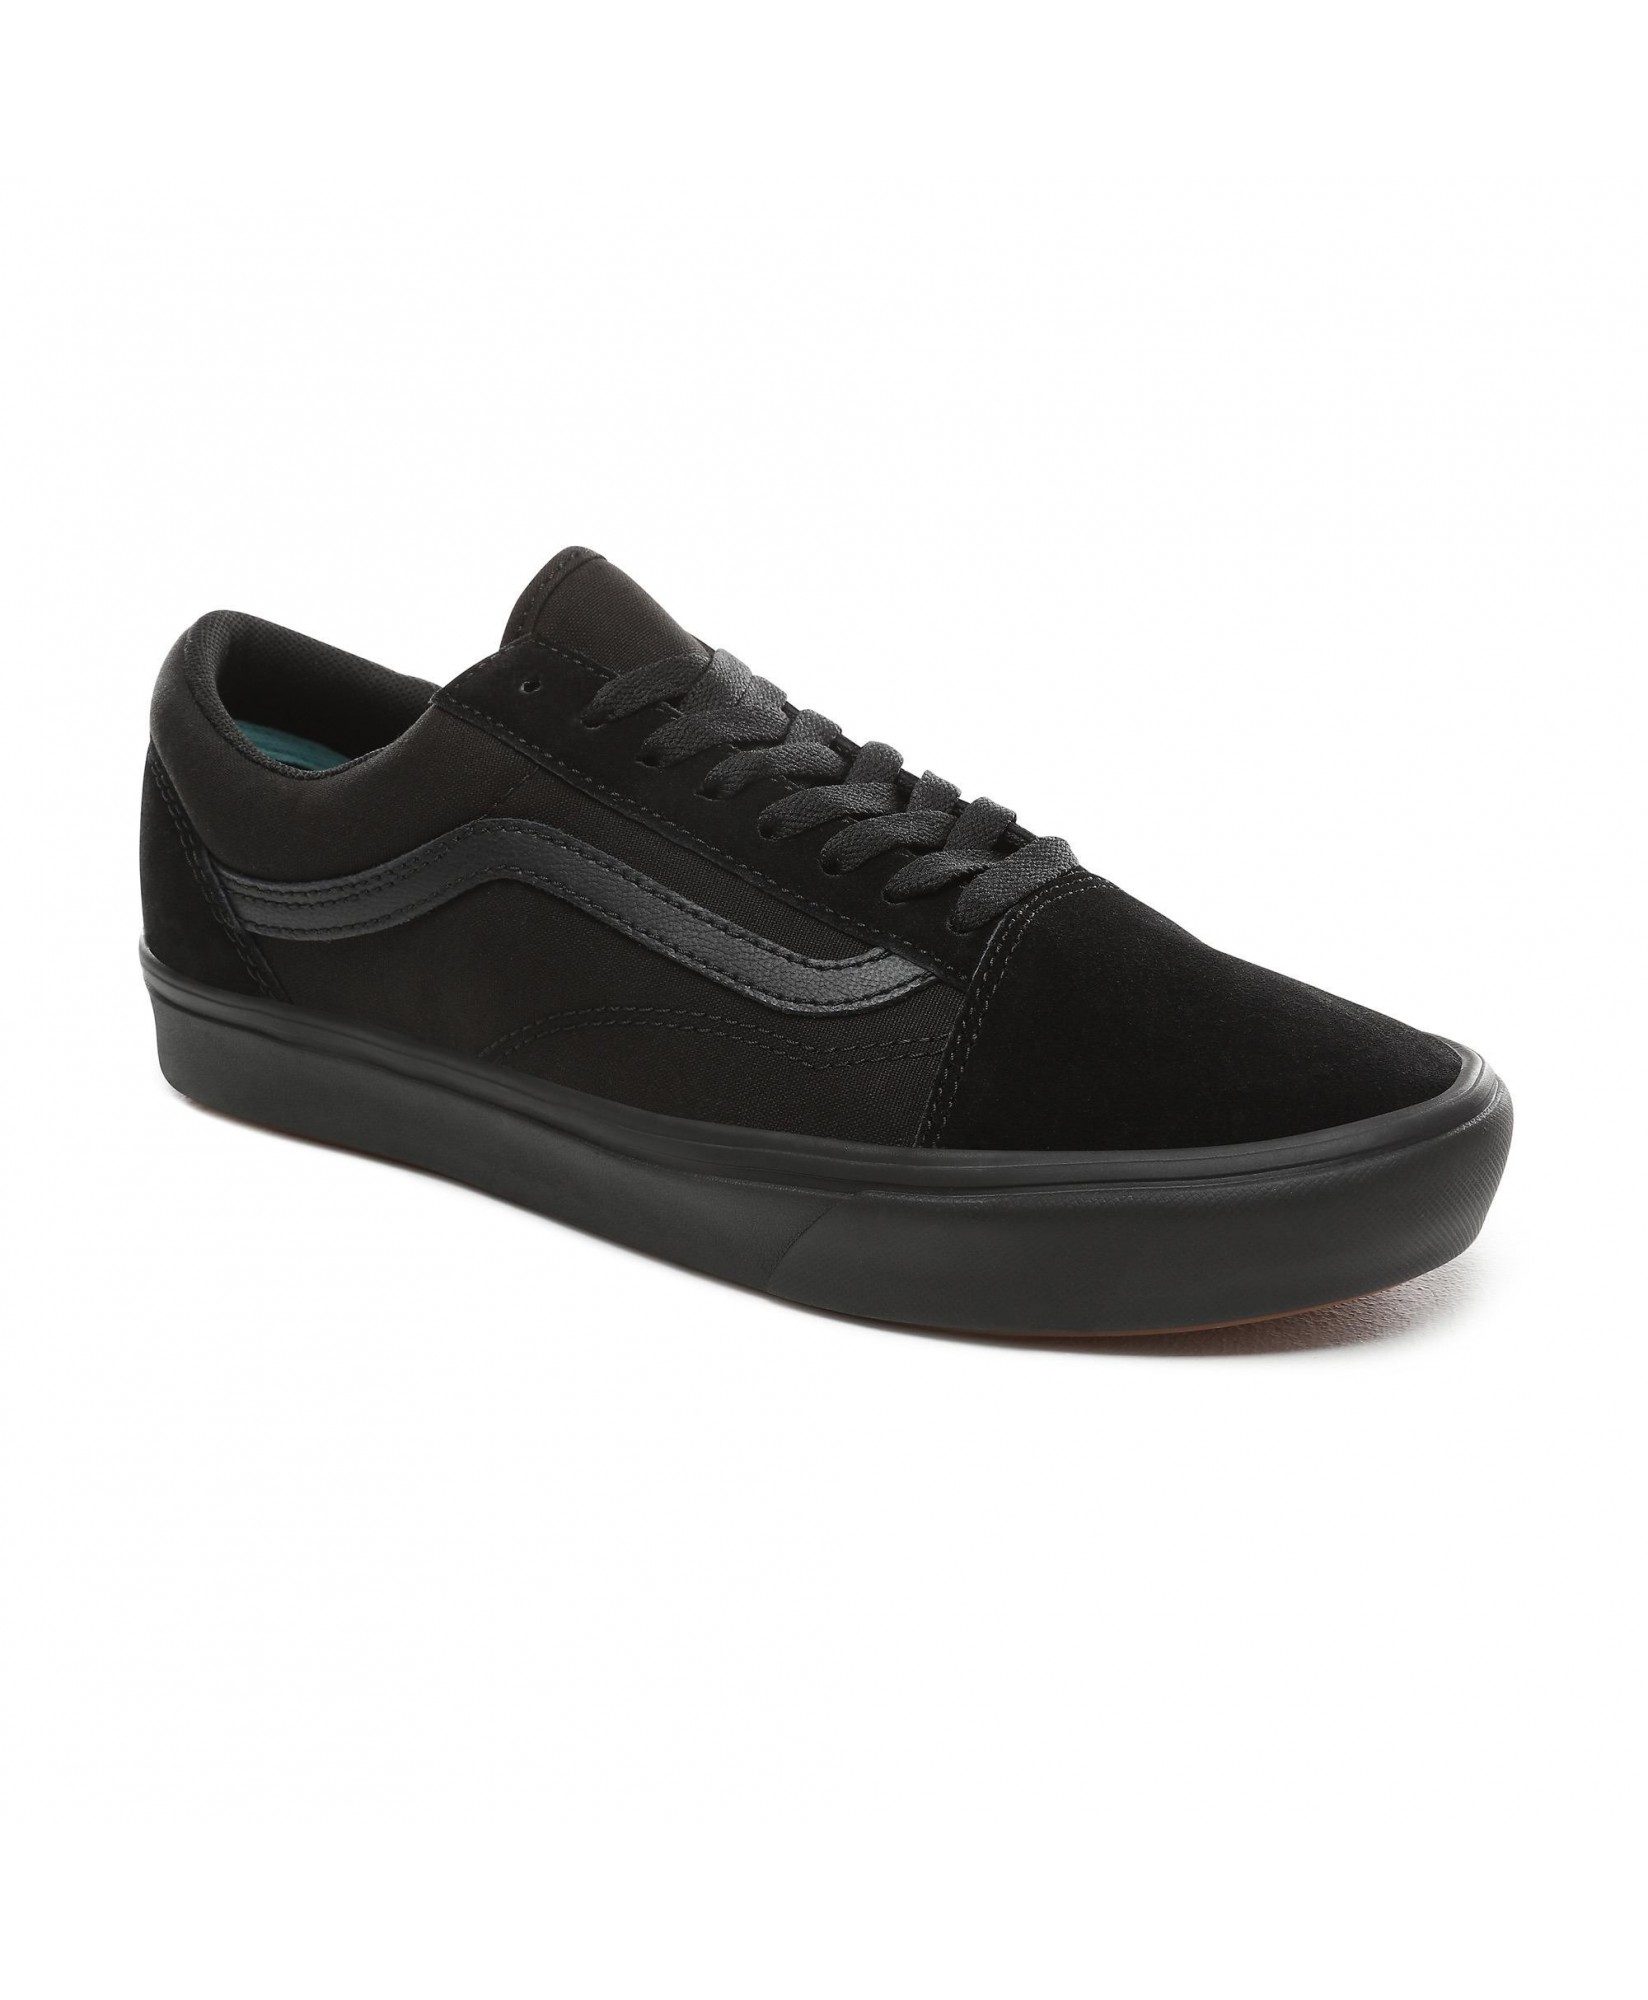 ZAPATILLAS COMFYCUSH OLD SKOOL ZAPATILLAS COMFYCUSH OLD SKOOL